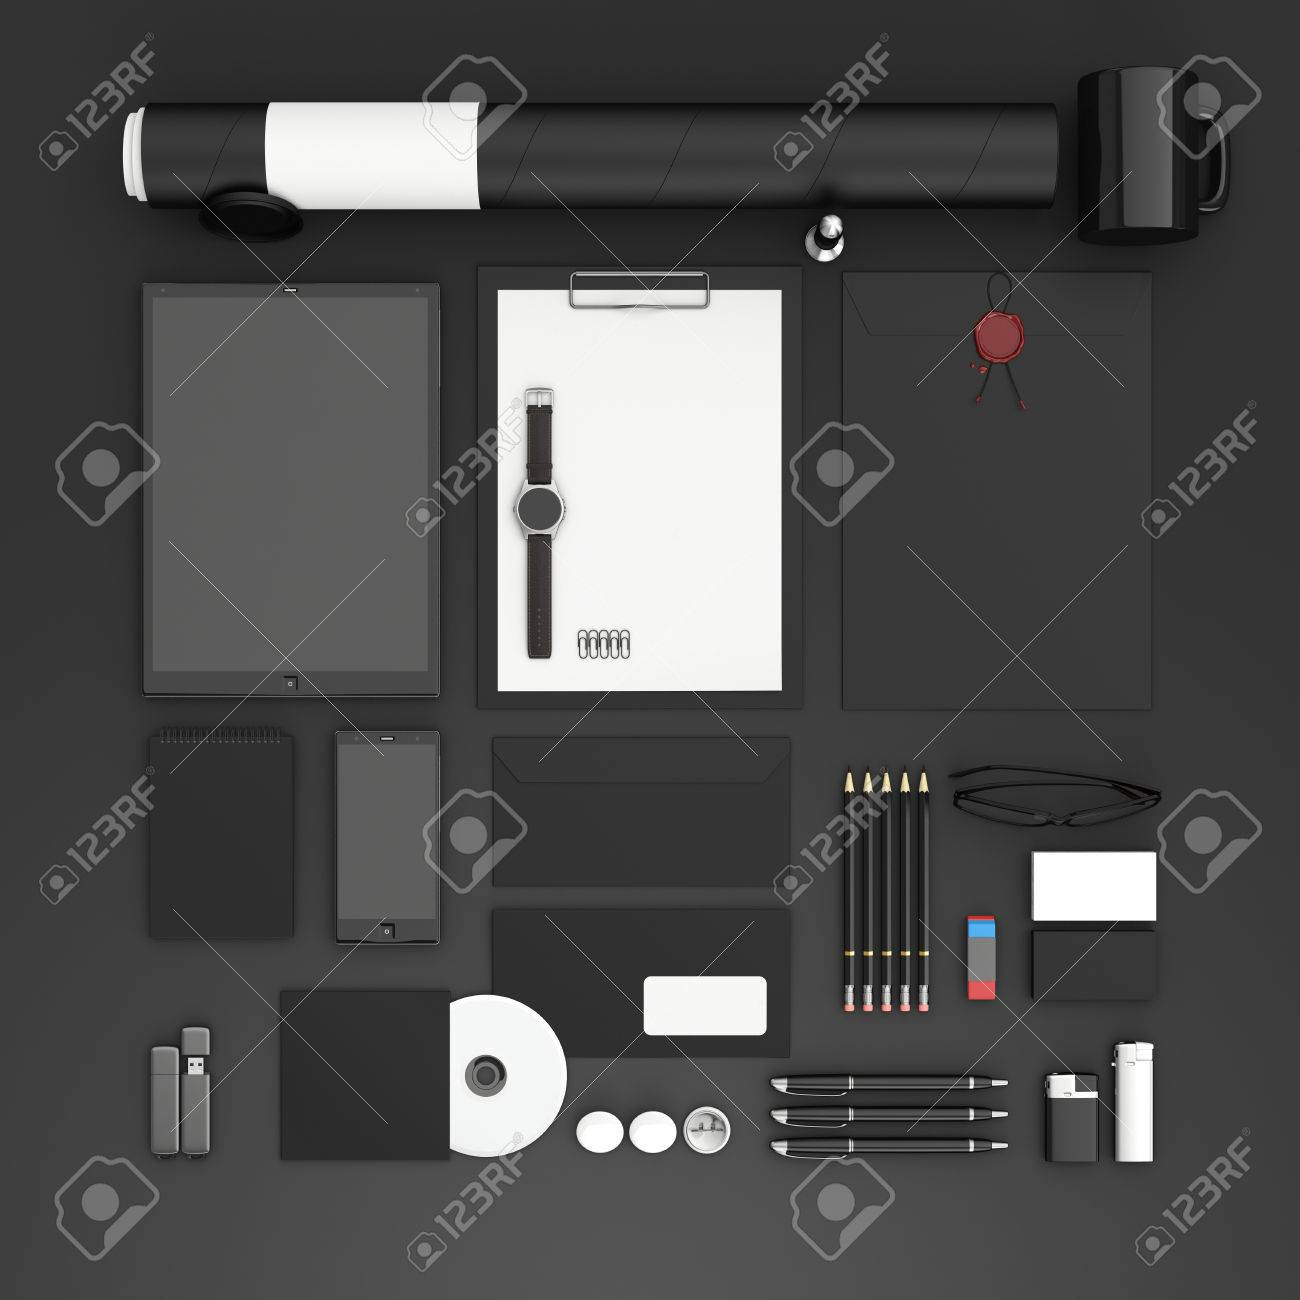 Identity Mock Up Set Of Blank Stationery For Branding Identity Stock Photo Picture And Royalty Free Image Image 52584248